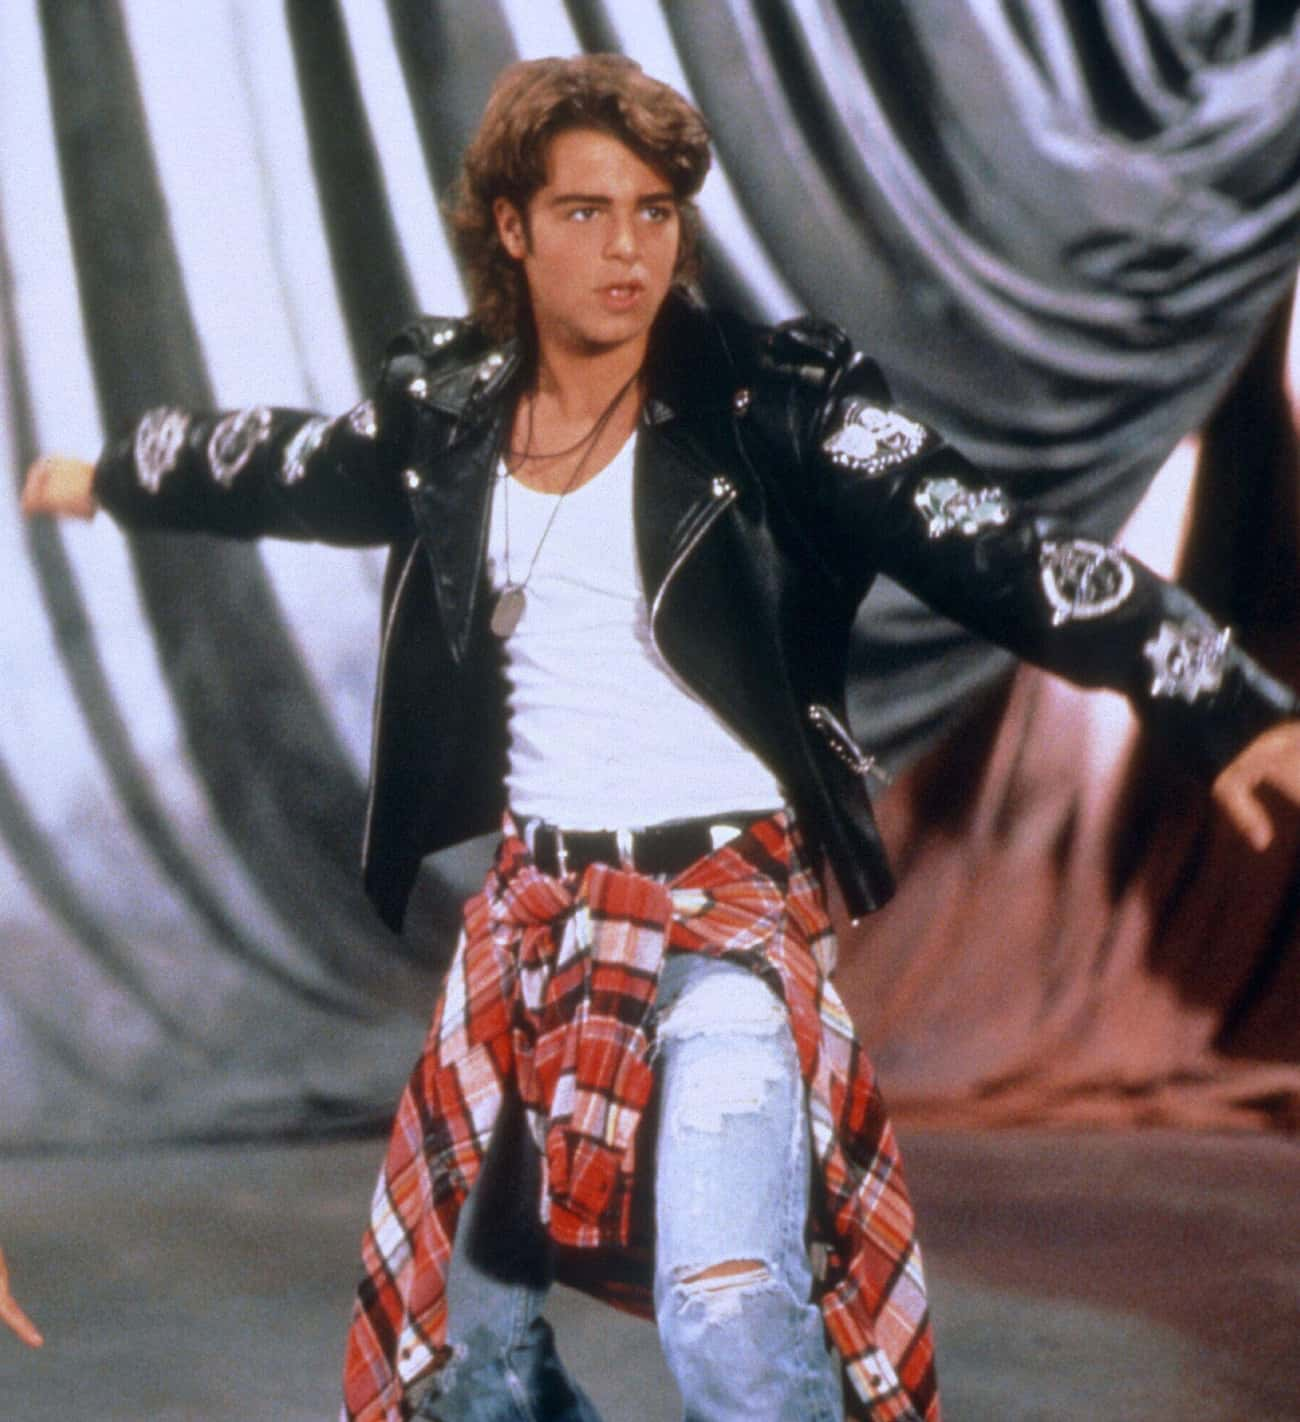 Sweaters Tied Around the Waist is listed (or ranked) 3 on the list Embarrassing '90s Clothes You Used to Rock